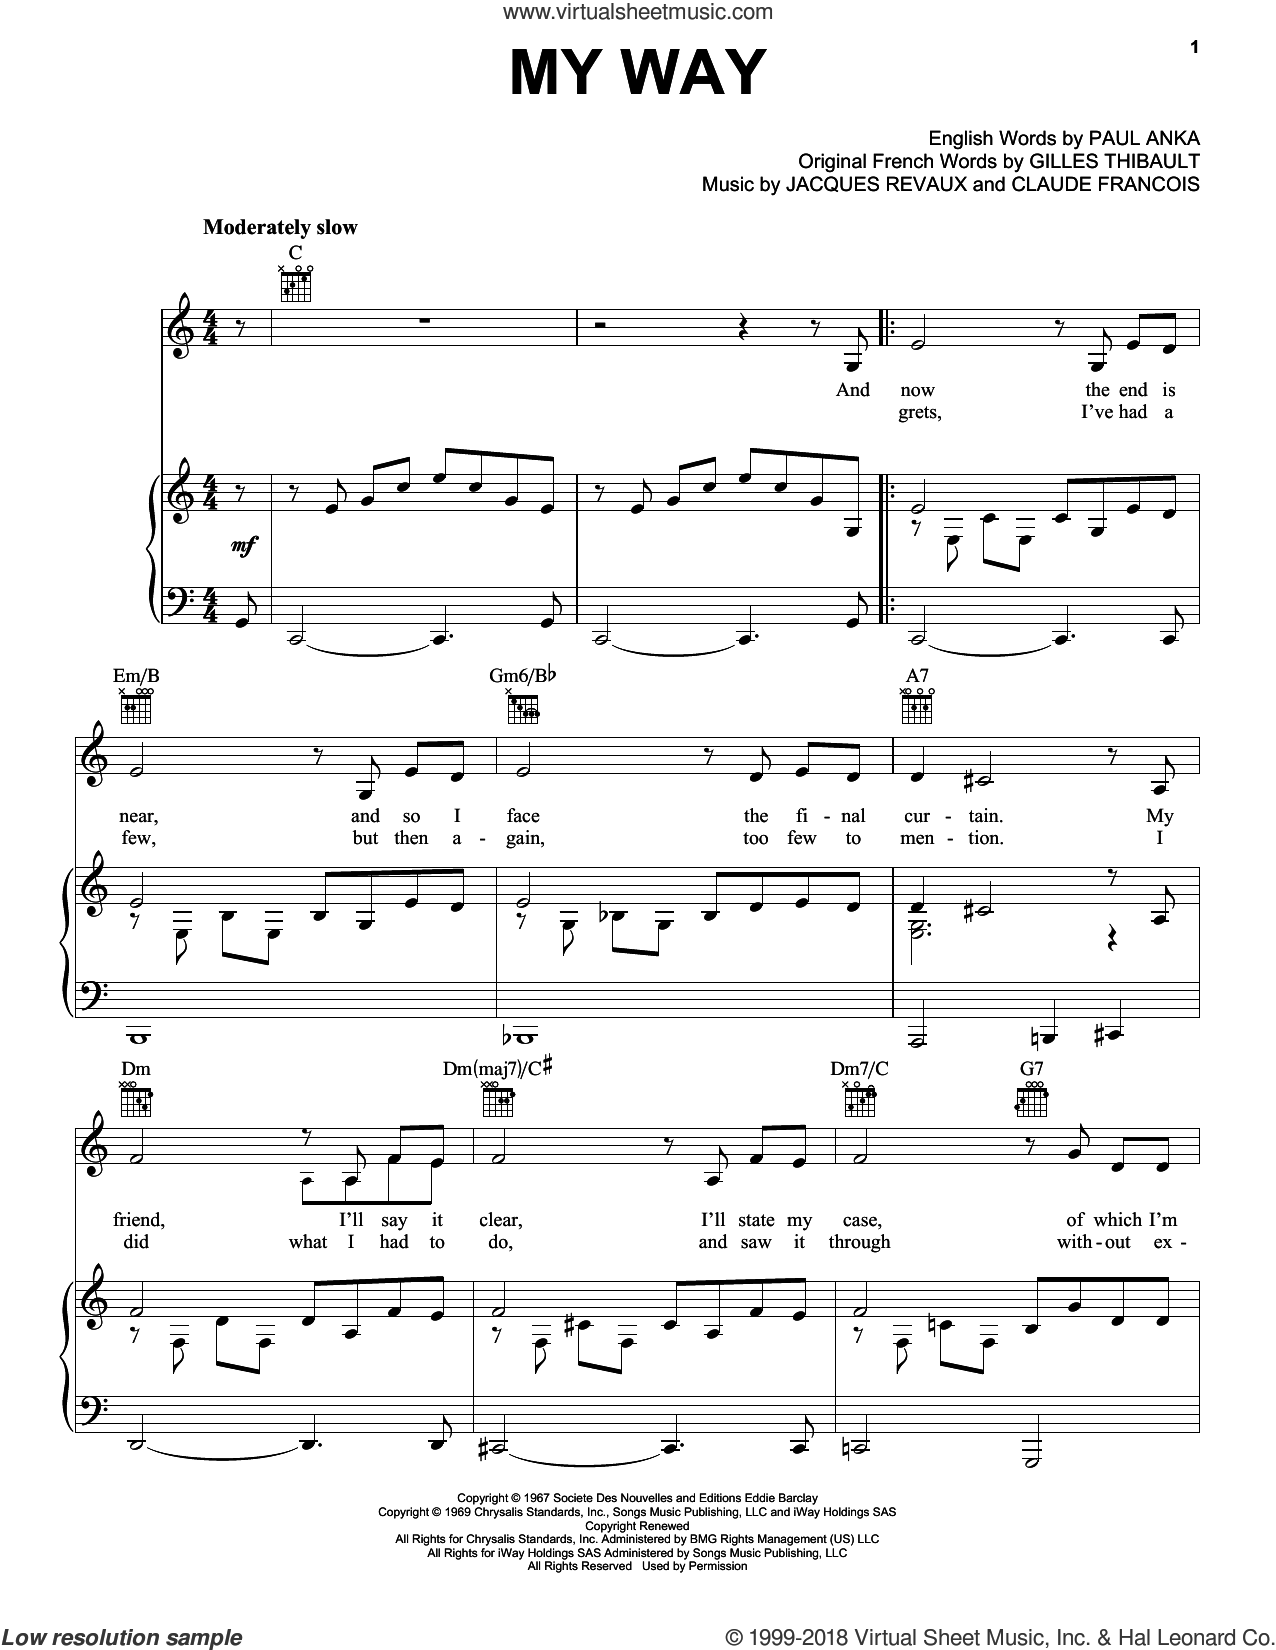 My Way sheet music for voice, piano or guitar by Jacques Revaux